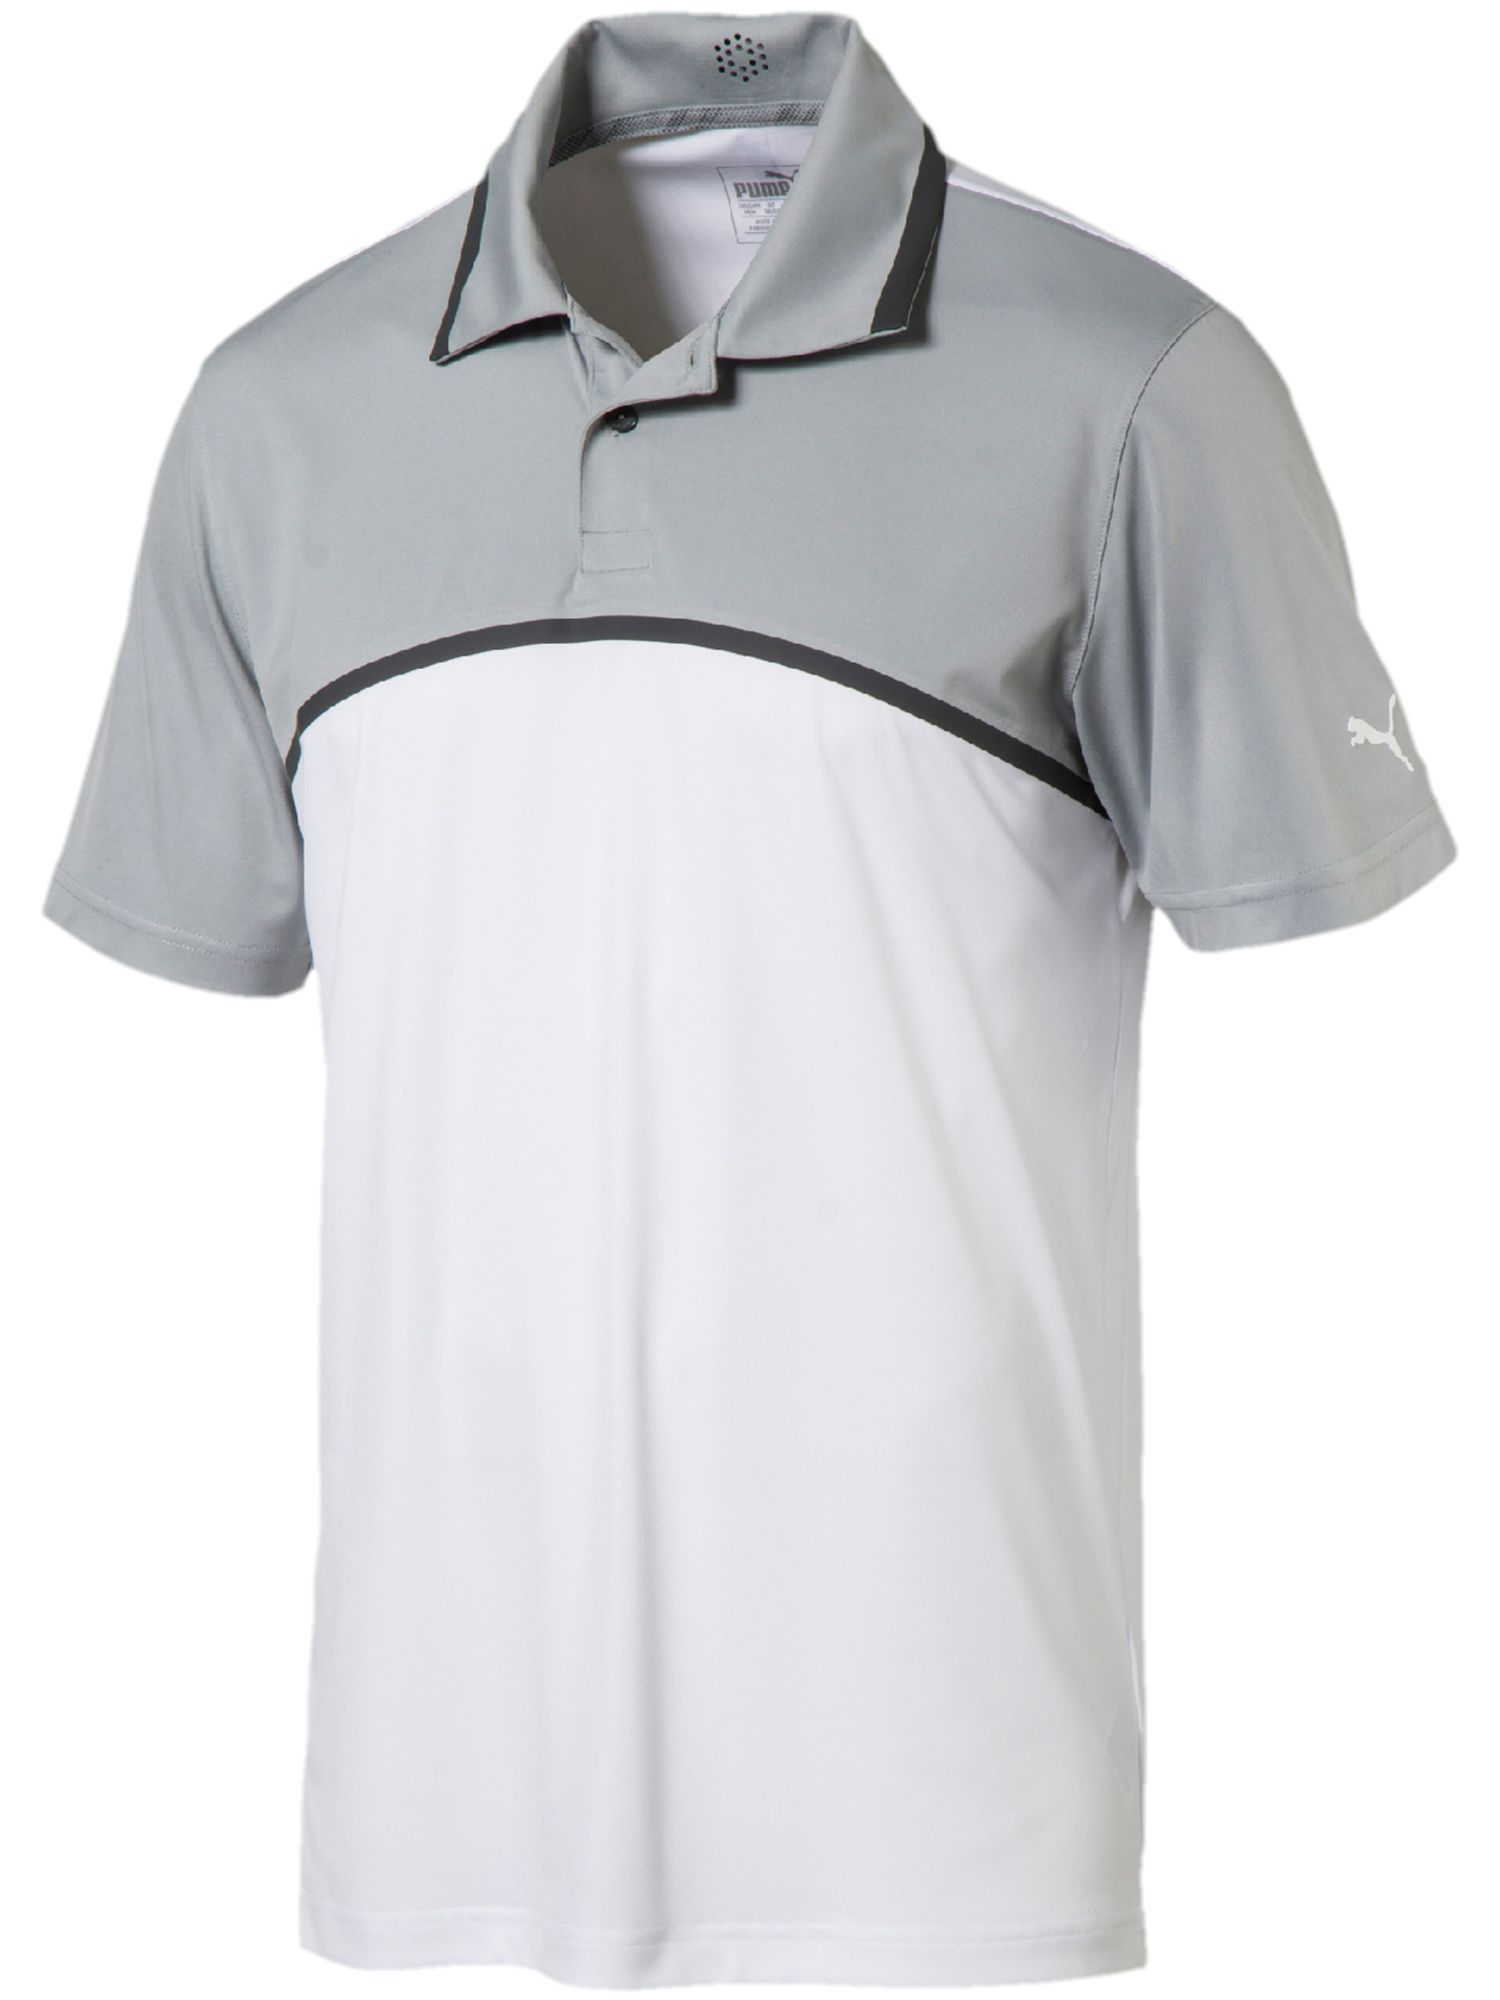 Men's Puma Tailored Colorblock Polo, White